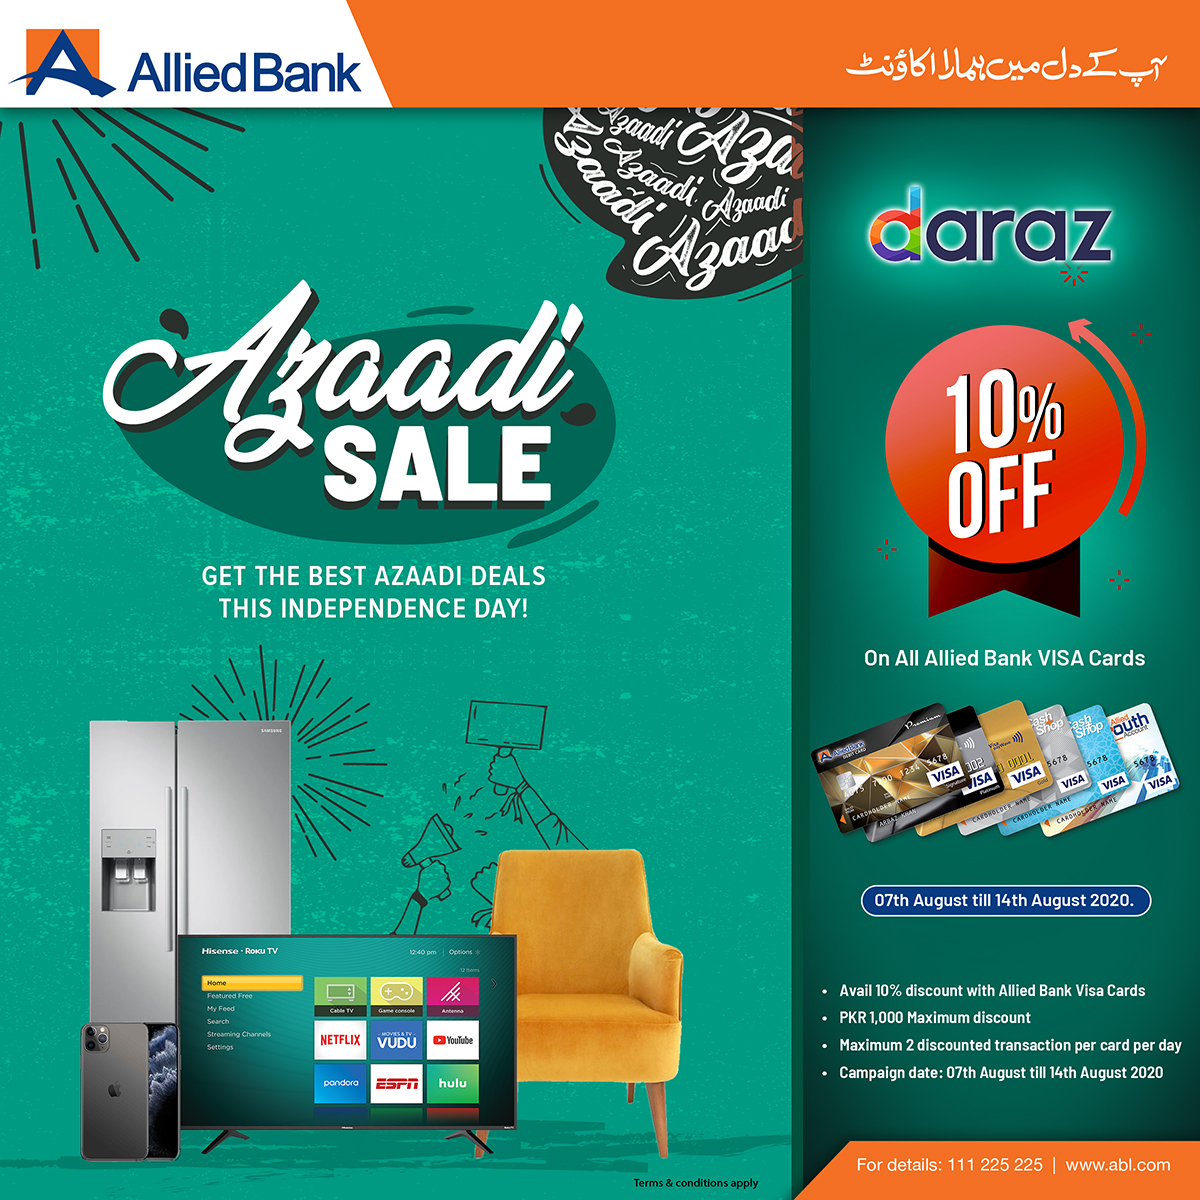 Shop online & enjoy flat 10% discount with ABL VISA Cards at https://t.co/bT8W03c4J1  Offer valid from 7th Aug till 14th Aug, 2020 For details visit: https://t.co/Ab2NpkxoiW Terms & conditions apply.  #ABL #Daraz #OnlineShopping #ABLDiscounts #Discount #DebitCard #CreditCard https://t.co/0p9tW95YW7